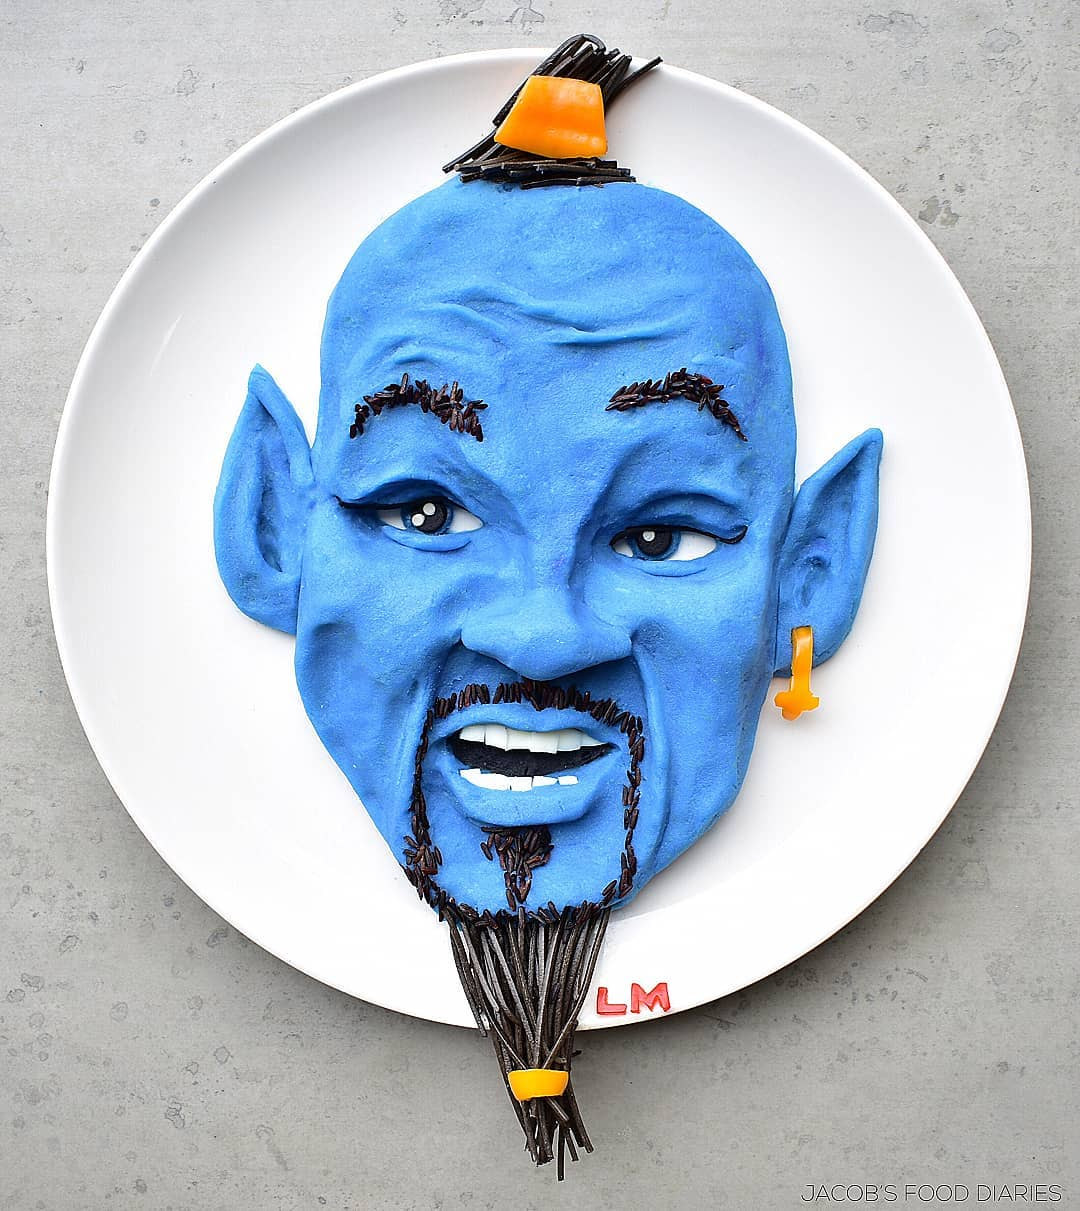 Mom turns her kid's lunches into edible pop culture icons 41